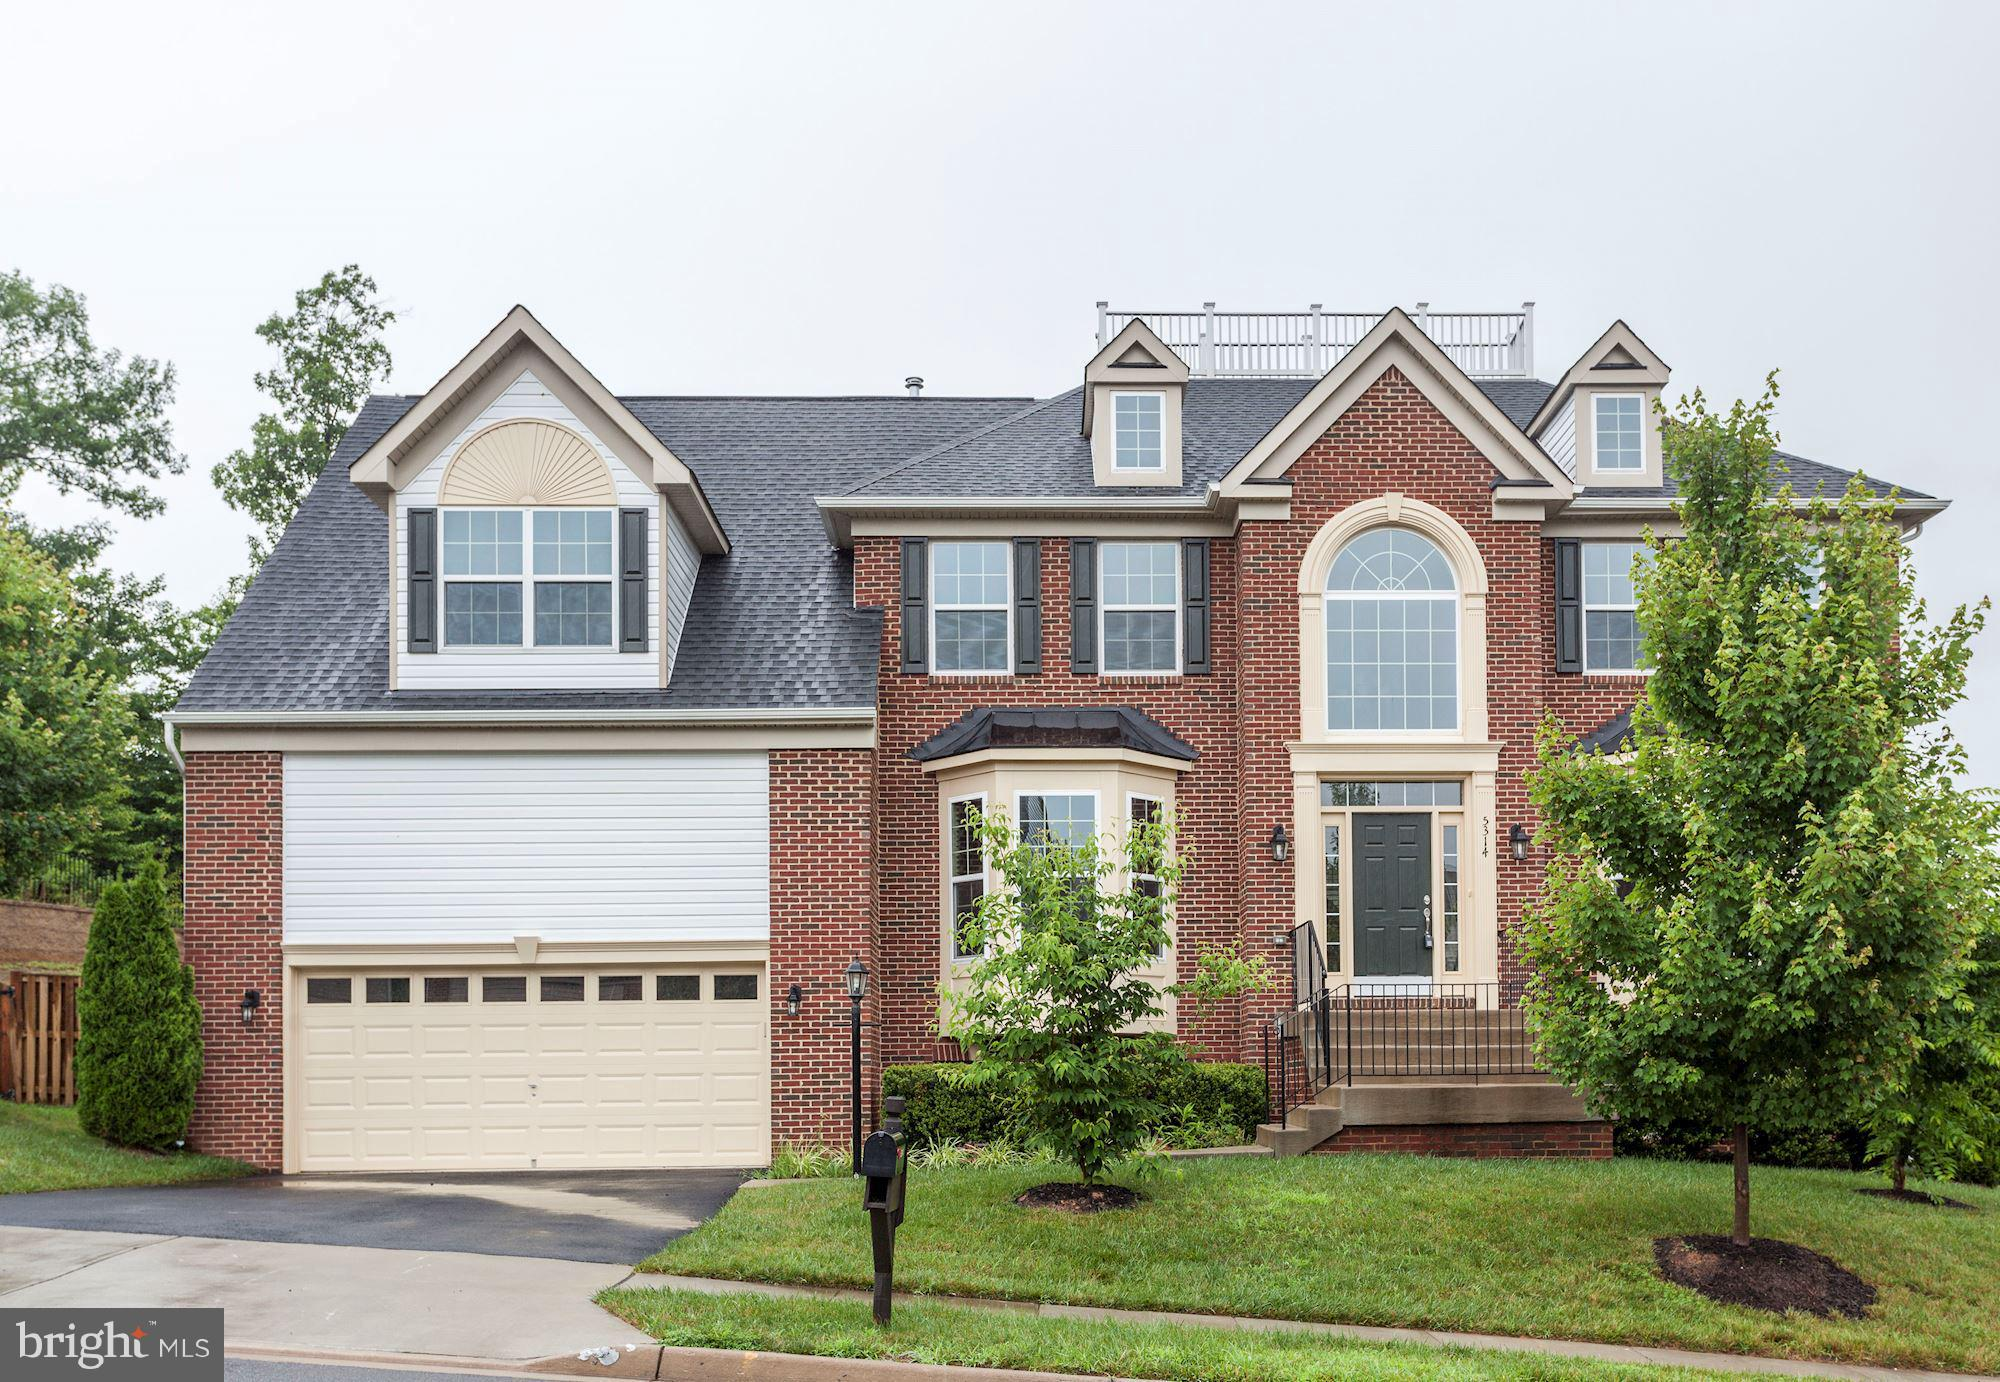 Awesome 4-Yr Old Colonial With Over 5,600 Total Sq Ft in Upscale Neighborhood*Grand 2-Story Foyer w/Coffered Ceiling*Gourmet Kitchen w/Granite & Breakfast Room & Bar, Gas Cooktop on Center Island*Office*Separate Dining*Formal Living*Family Rm w/Fireplace*Master w/High Ceilings, Large Bathroom & Walk-In Closet*Finished Walkout Basement*Shows Like a Model.